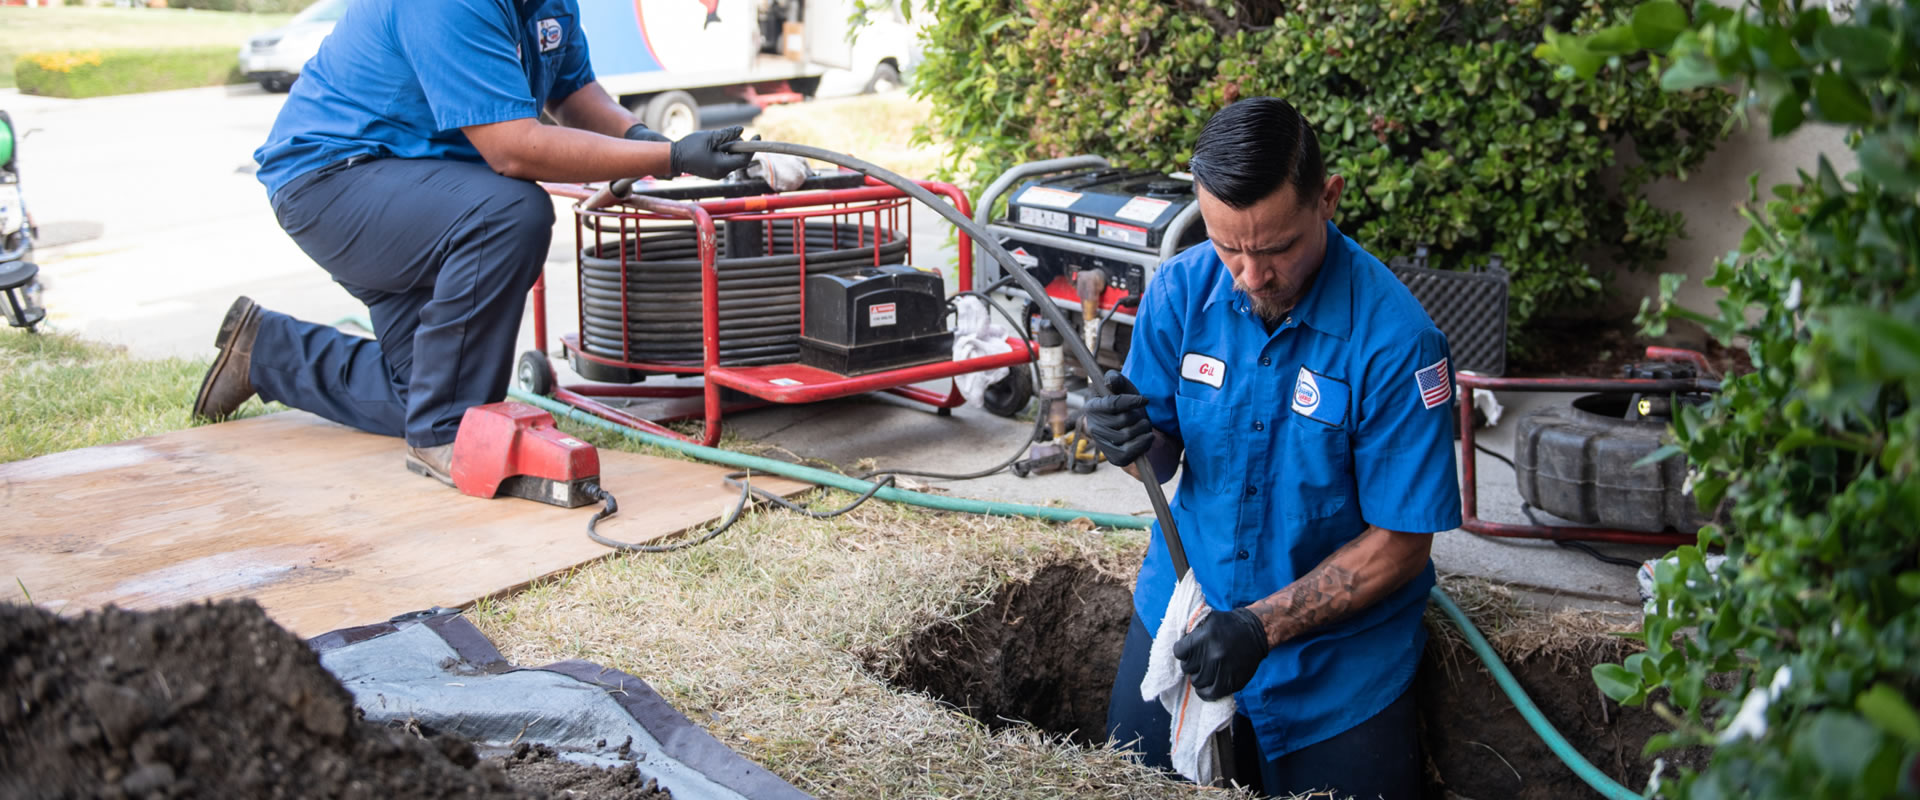 Trenchless Sewer Repair in San Mateo, CA